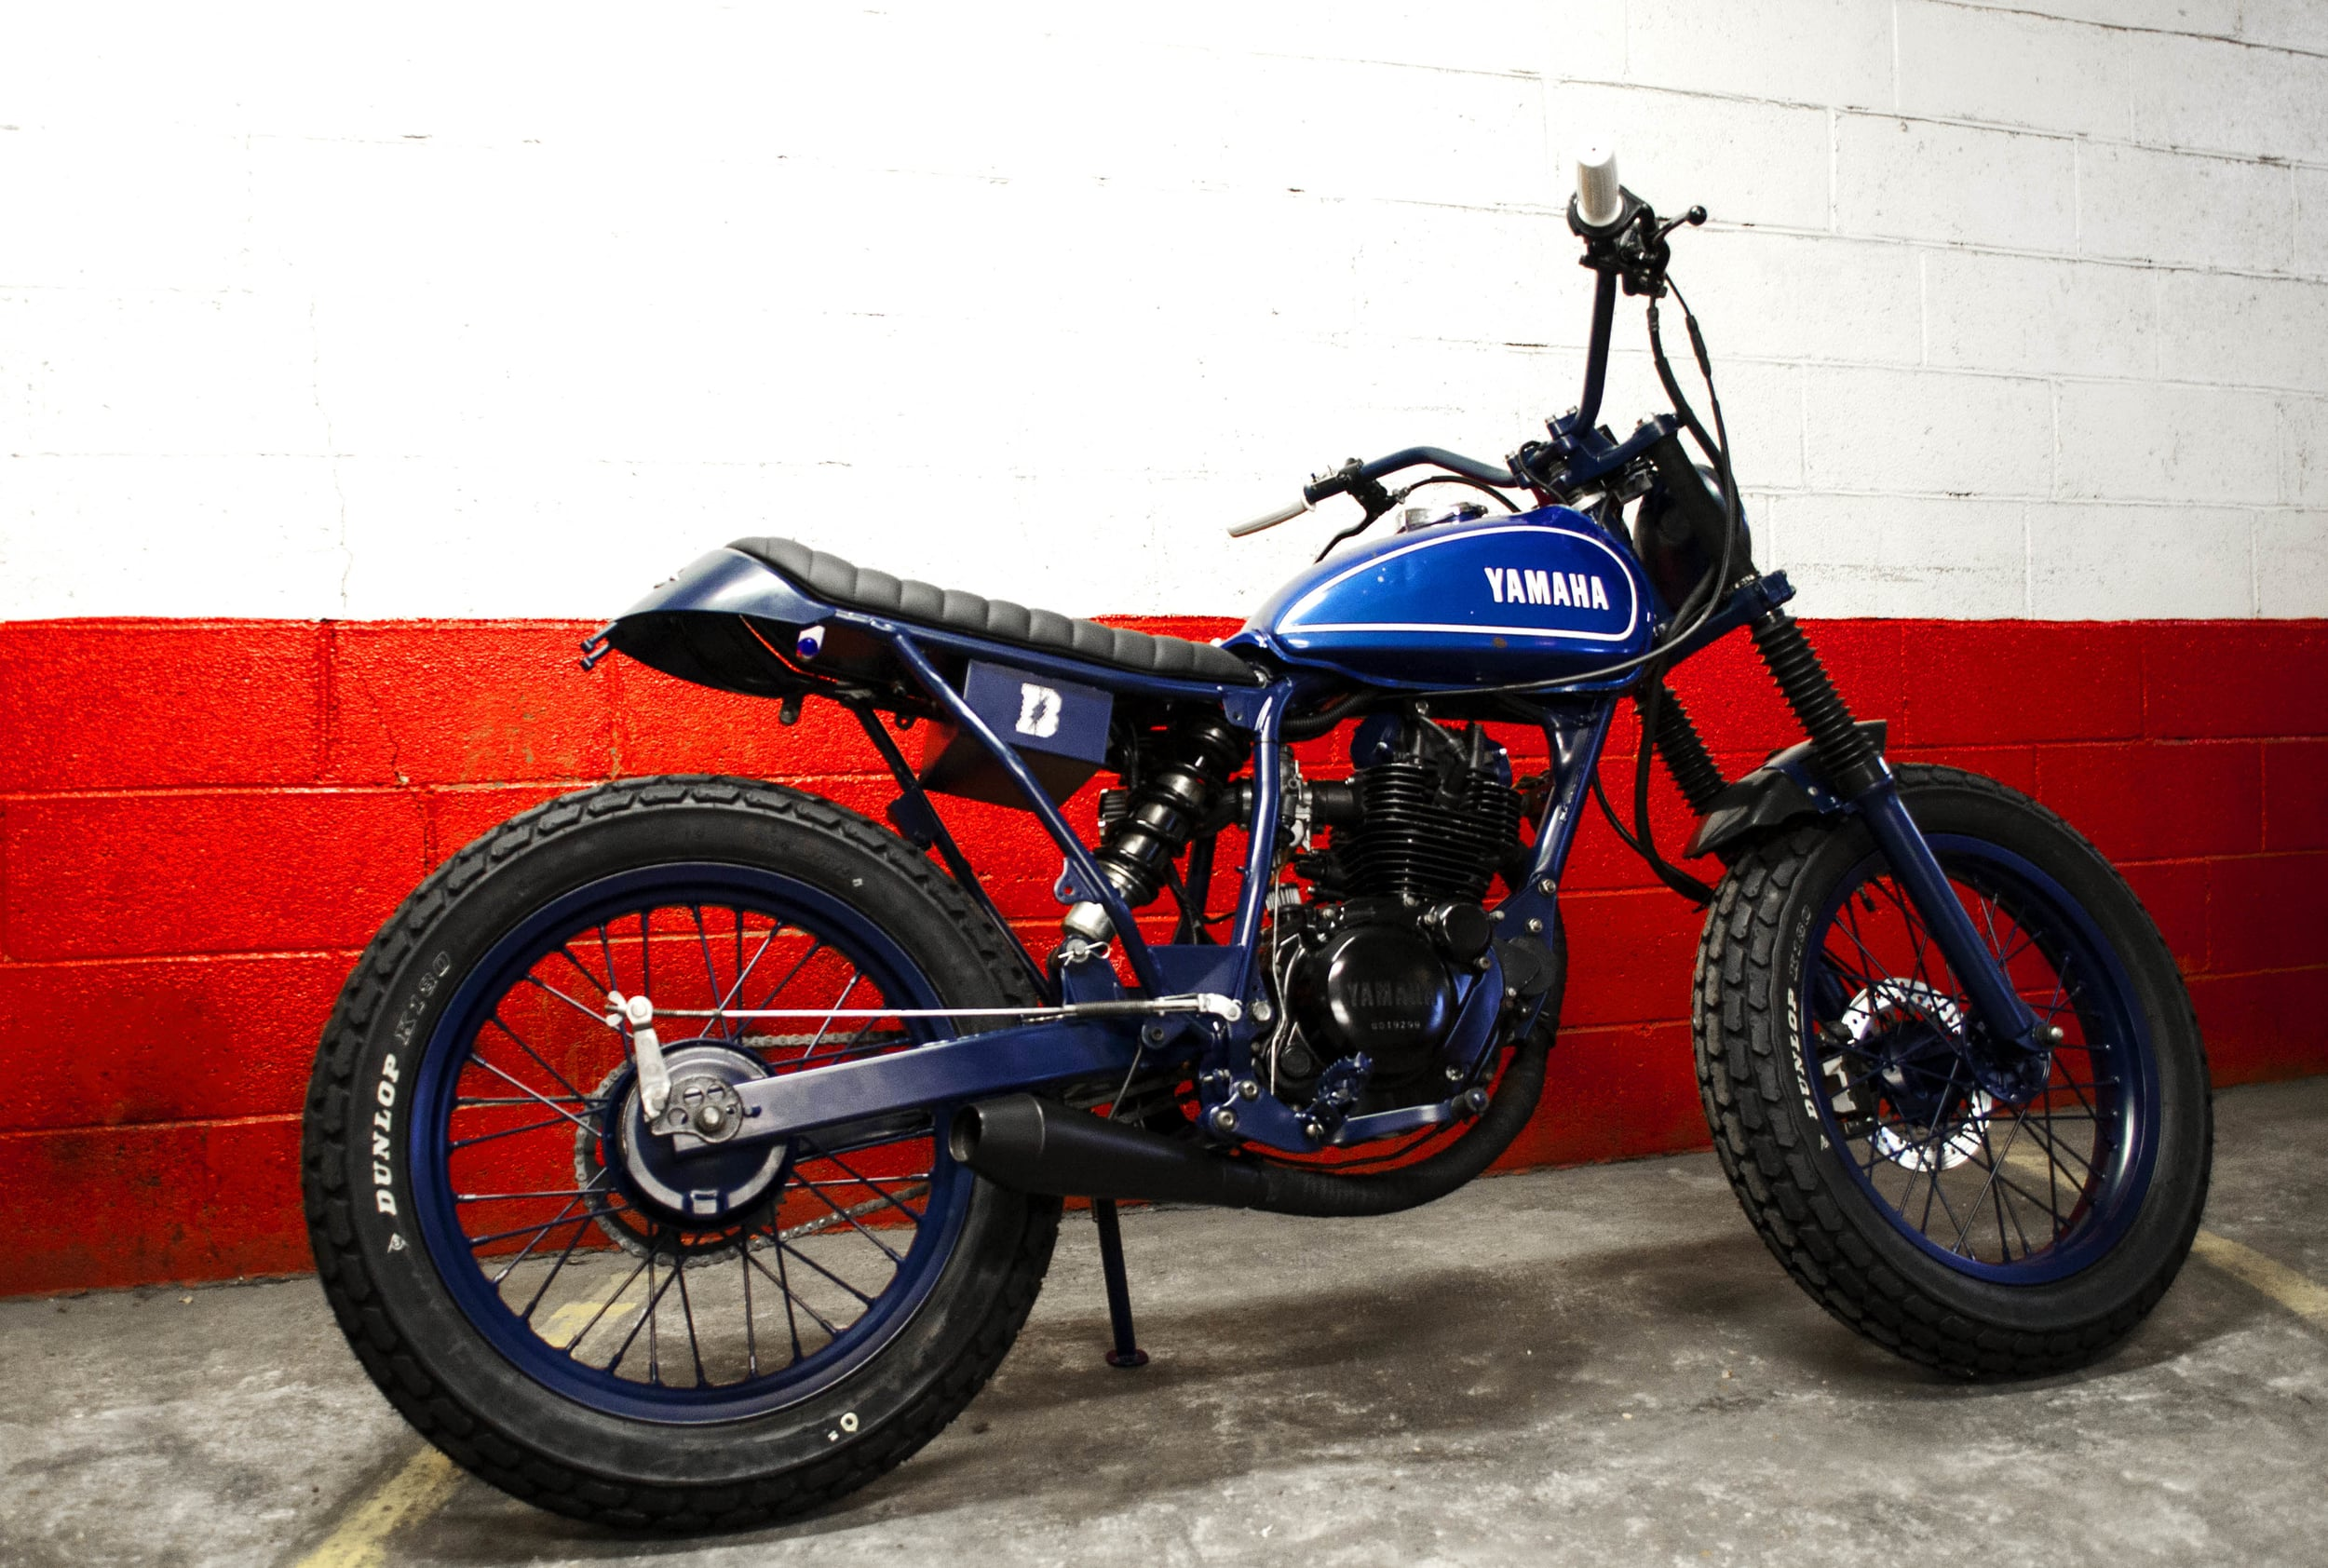 """- 18 inches rear wheel mounted to give a real """"dirt track"""" look to the machine;  - of course,  Dunlop K180  mounted on both front and rear wheels;  - 100 % mat blue powder coating of the whole machine (frame, swing arm, fork legs, headlight, foot rests, side stand, etc...)."""